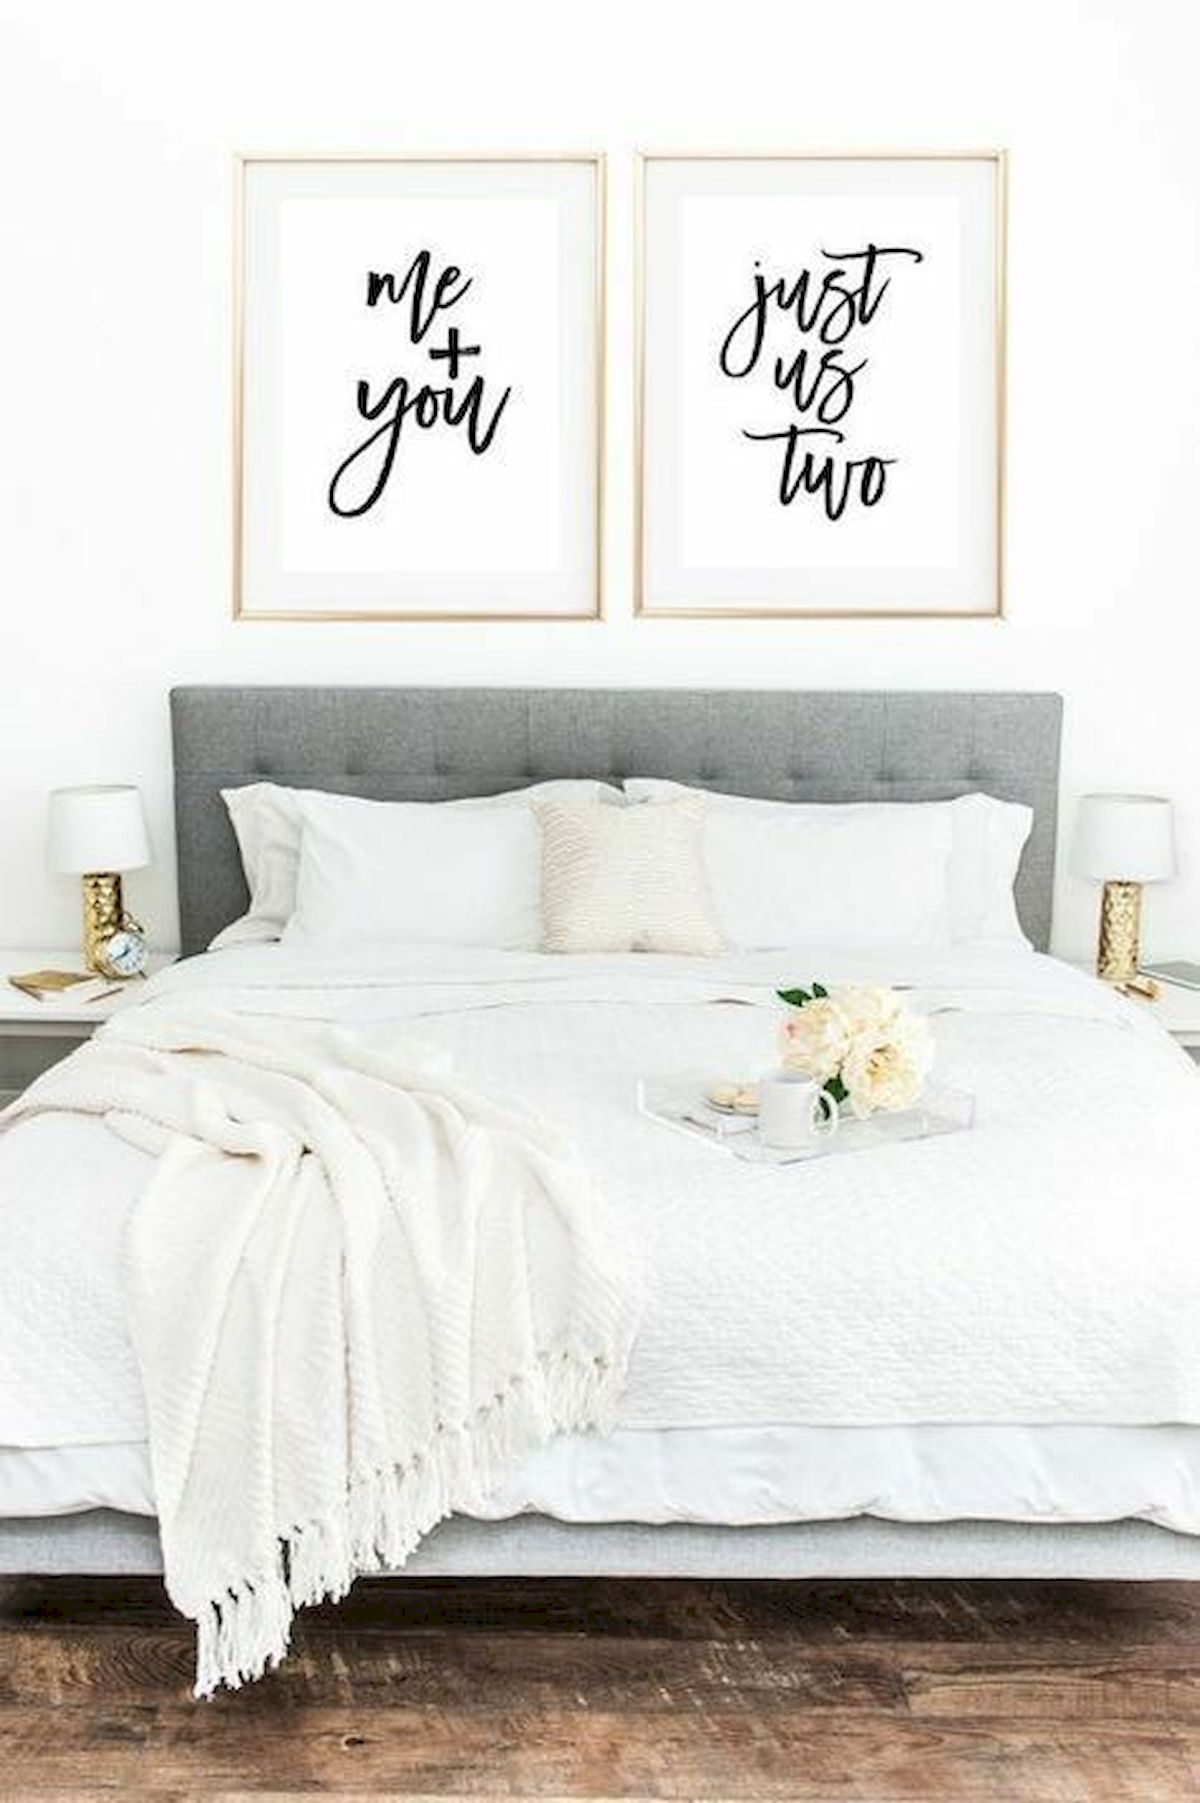 70 Simple Wall Bedroom Decor and Design Ideas (64)